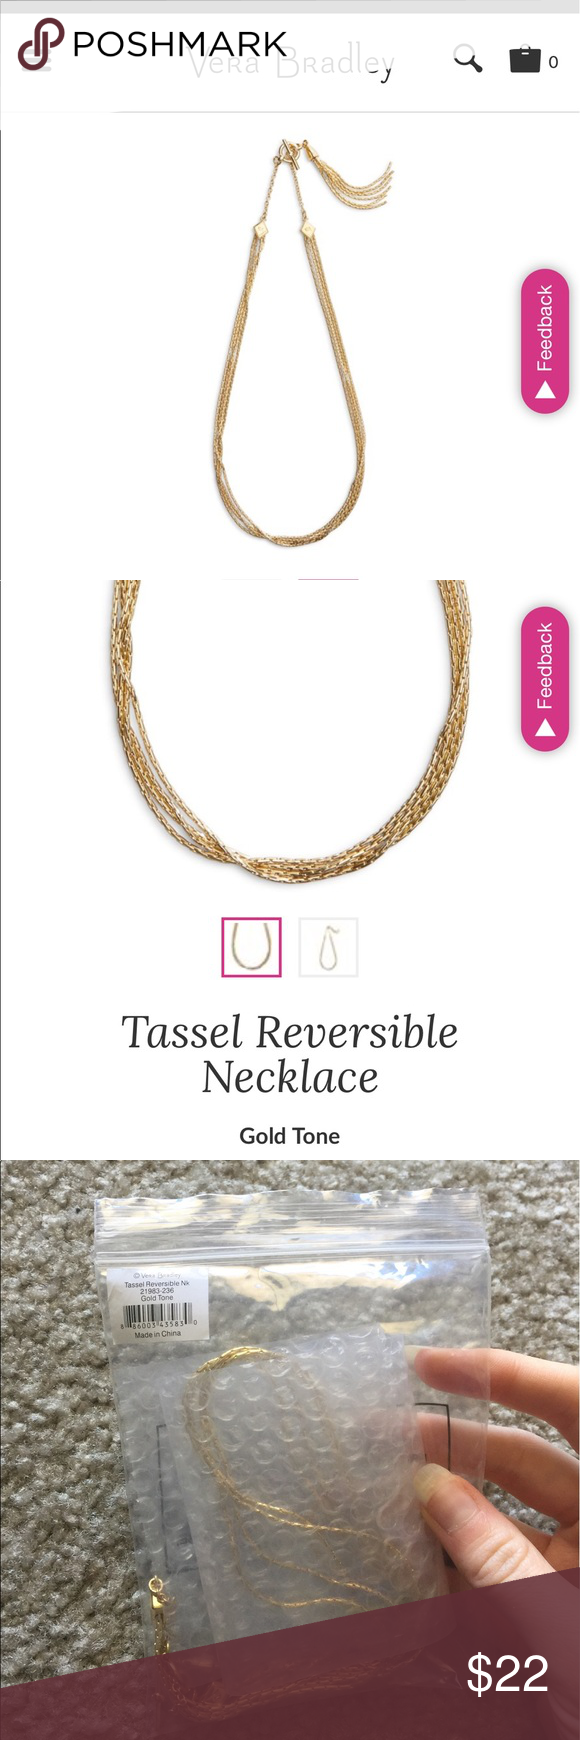 Vera bradley gold tone tassel reversible necklace Brand new in bag Vera Bradley gold tone reversible tassel necklace. Tassel is removable can be worn two ways, super cute and perfect condition! Vera Bradley Jewelry Necklaces